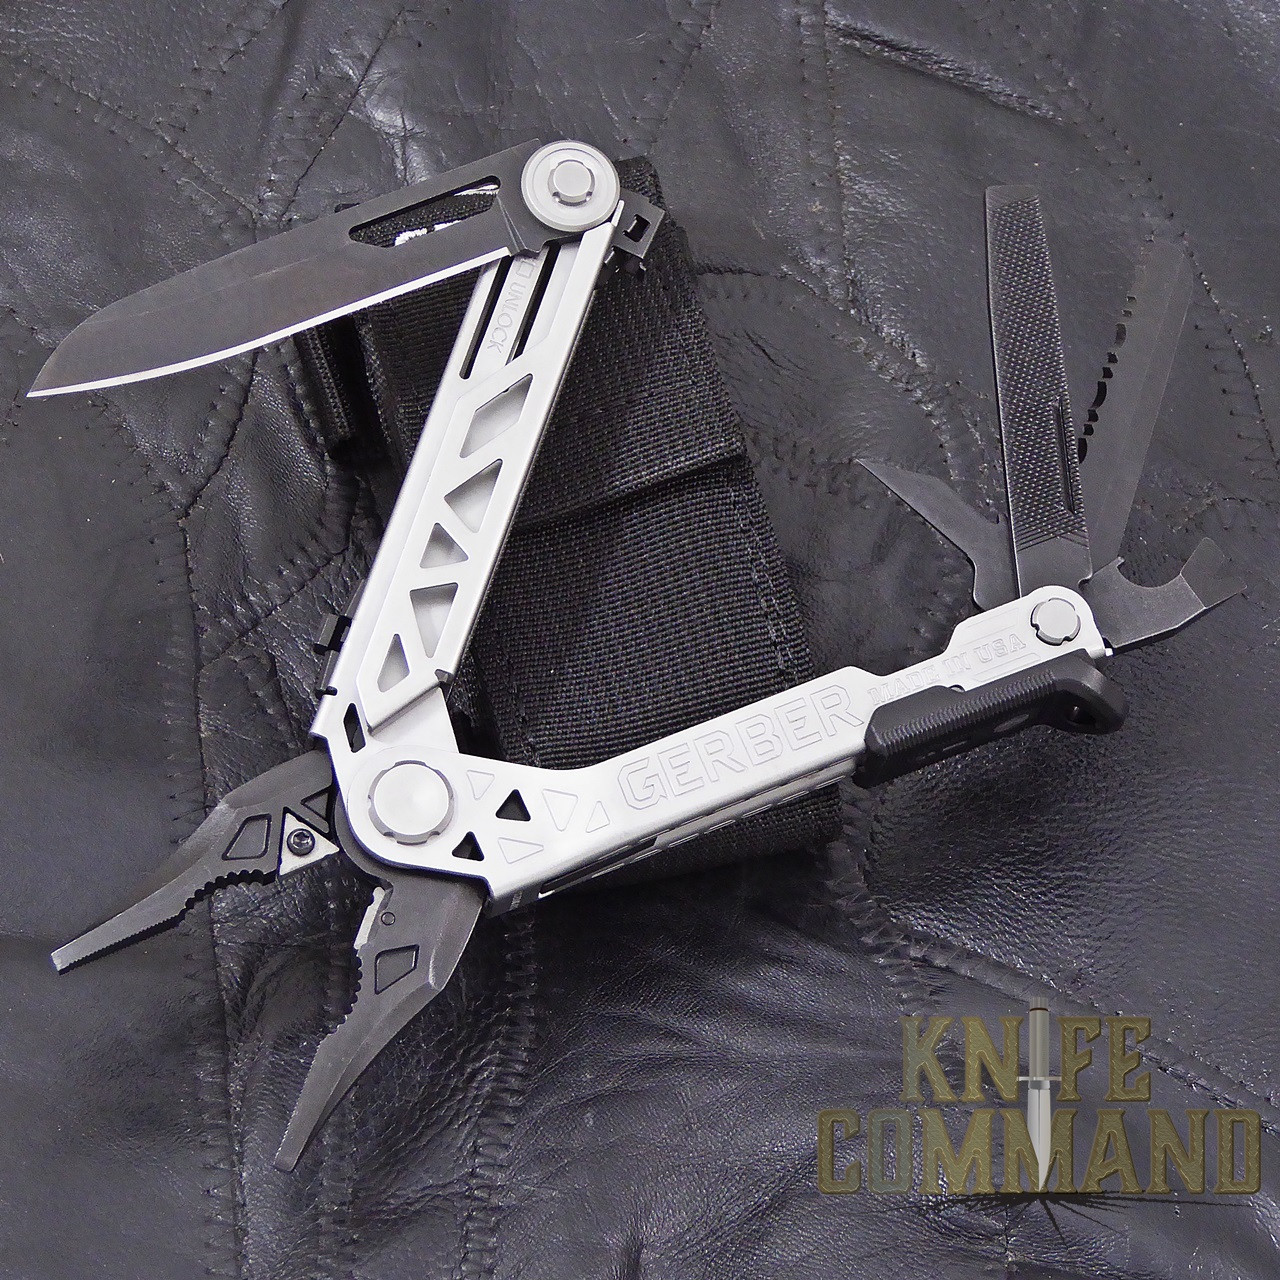 Gerber Center-Drive Multi-Tool Pliers with Sheath and Bit Set.  So many tools in one.